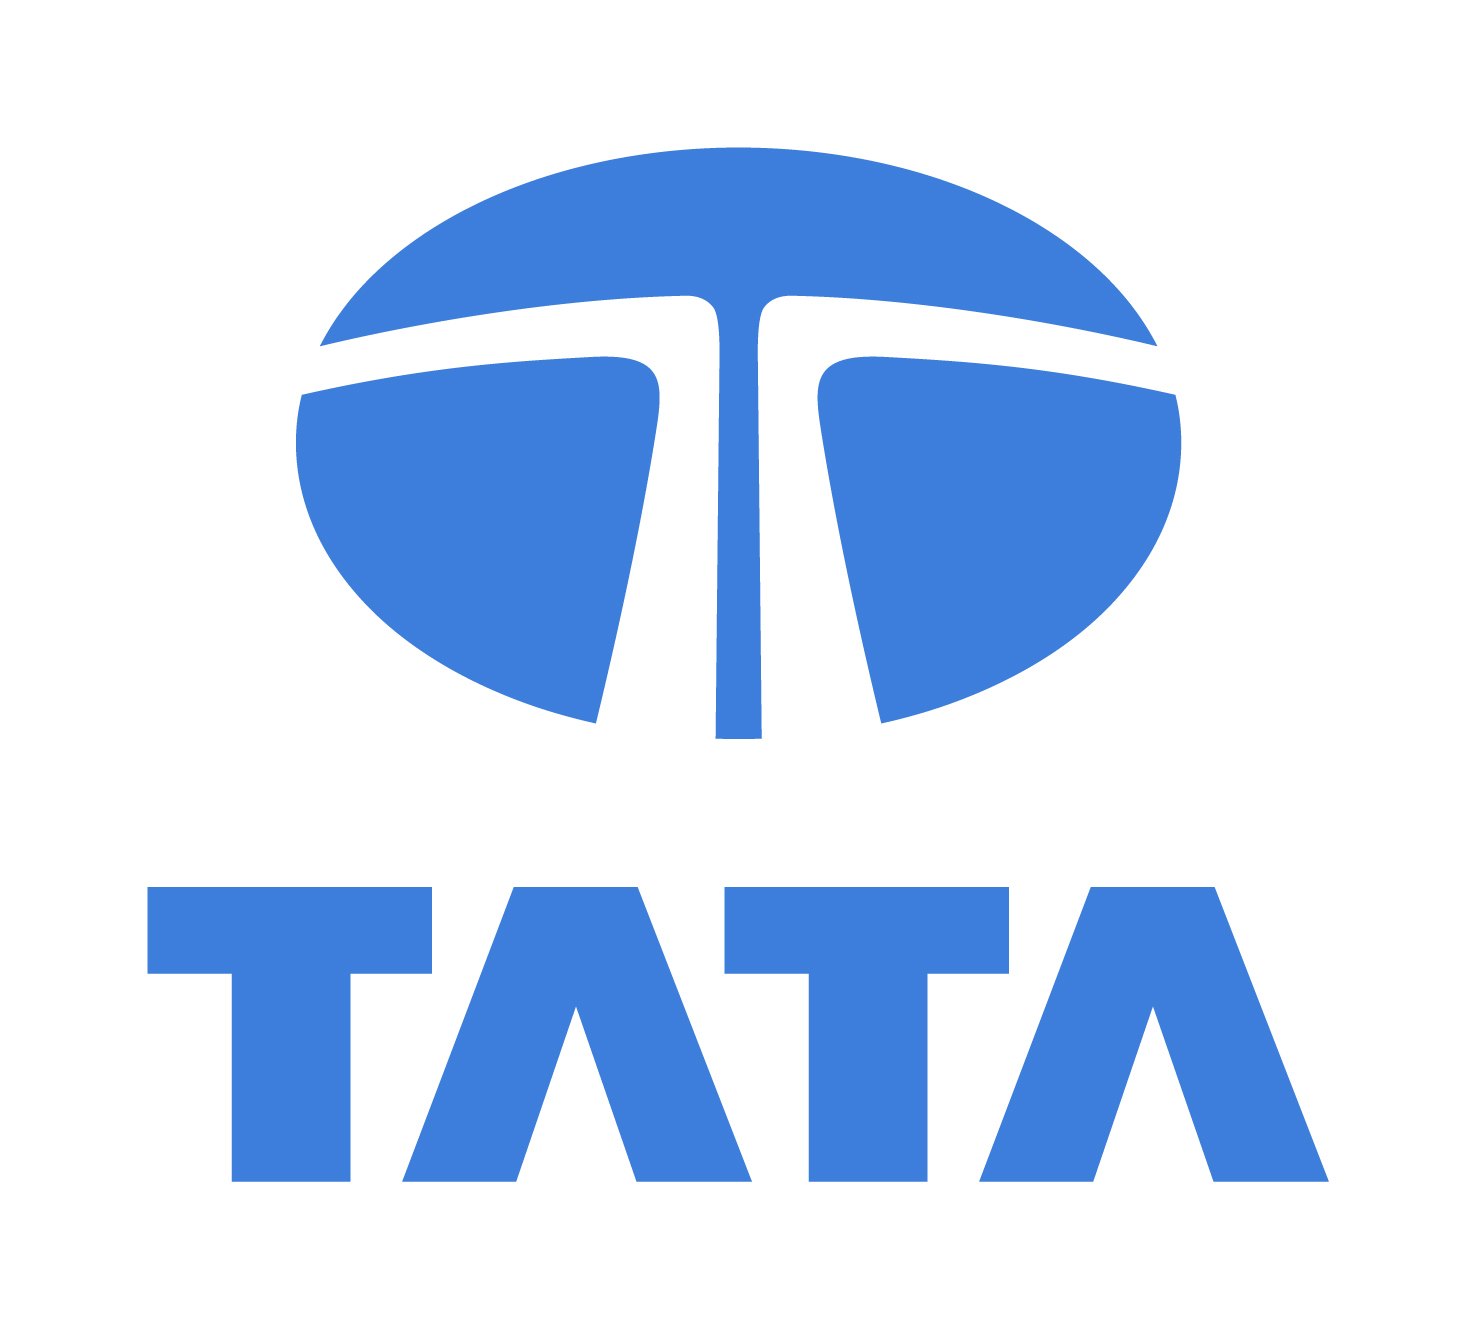 This is the official Tata logo as issued by Group Communications in August 2010.